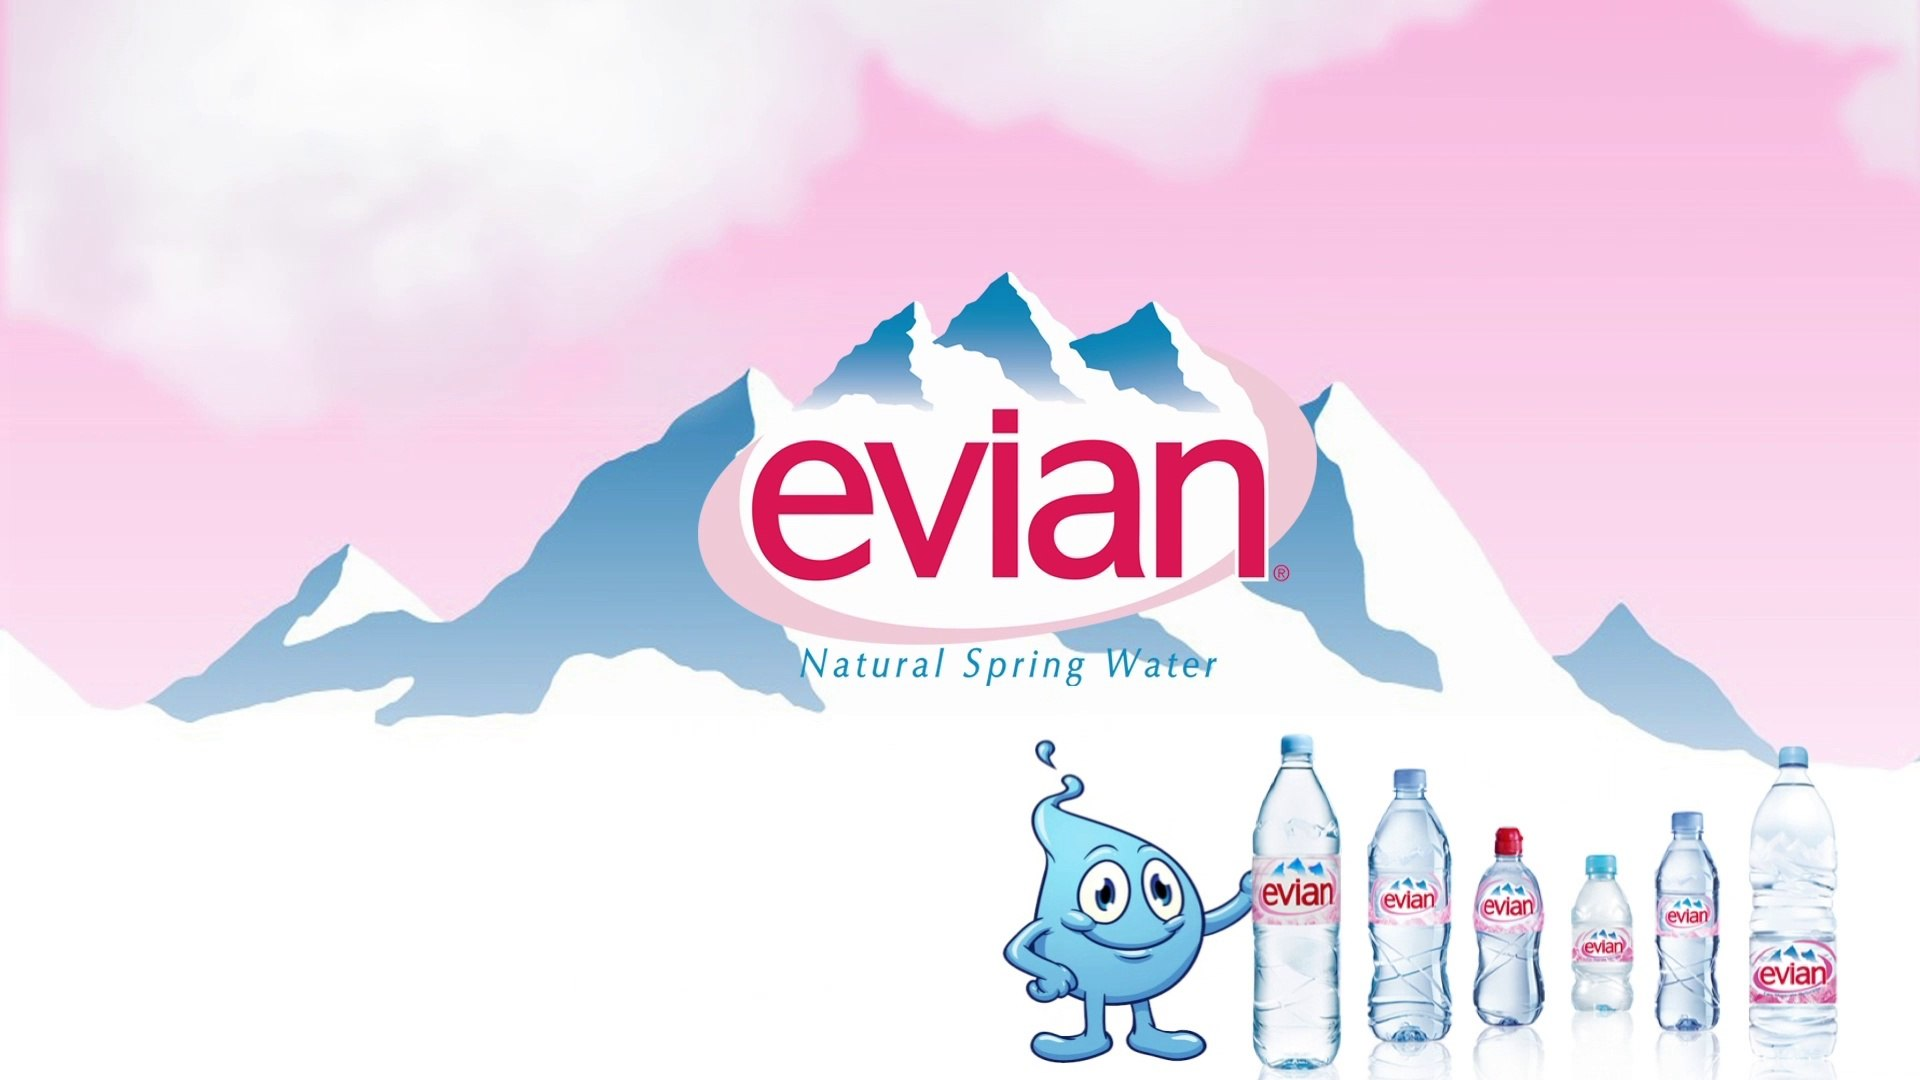 #52 Evian Mineral Water Logo Plays With Mr. Water Parody.